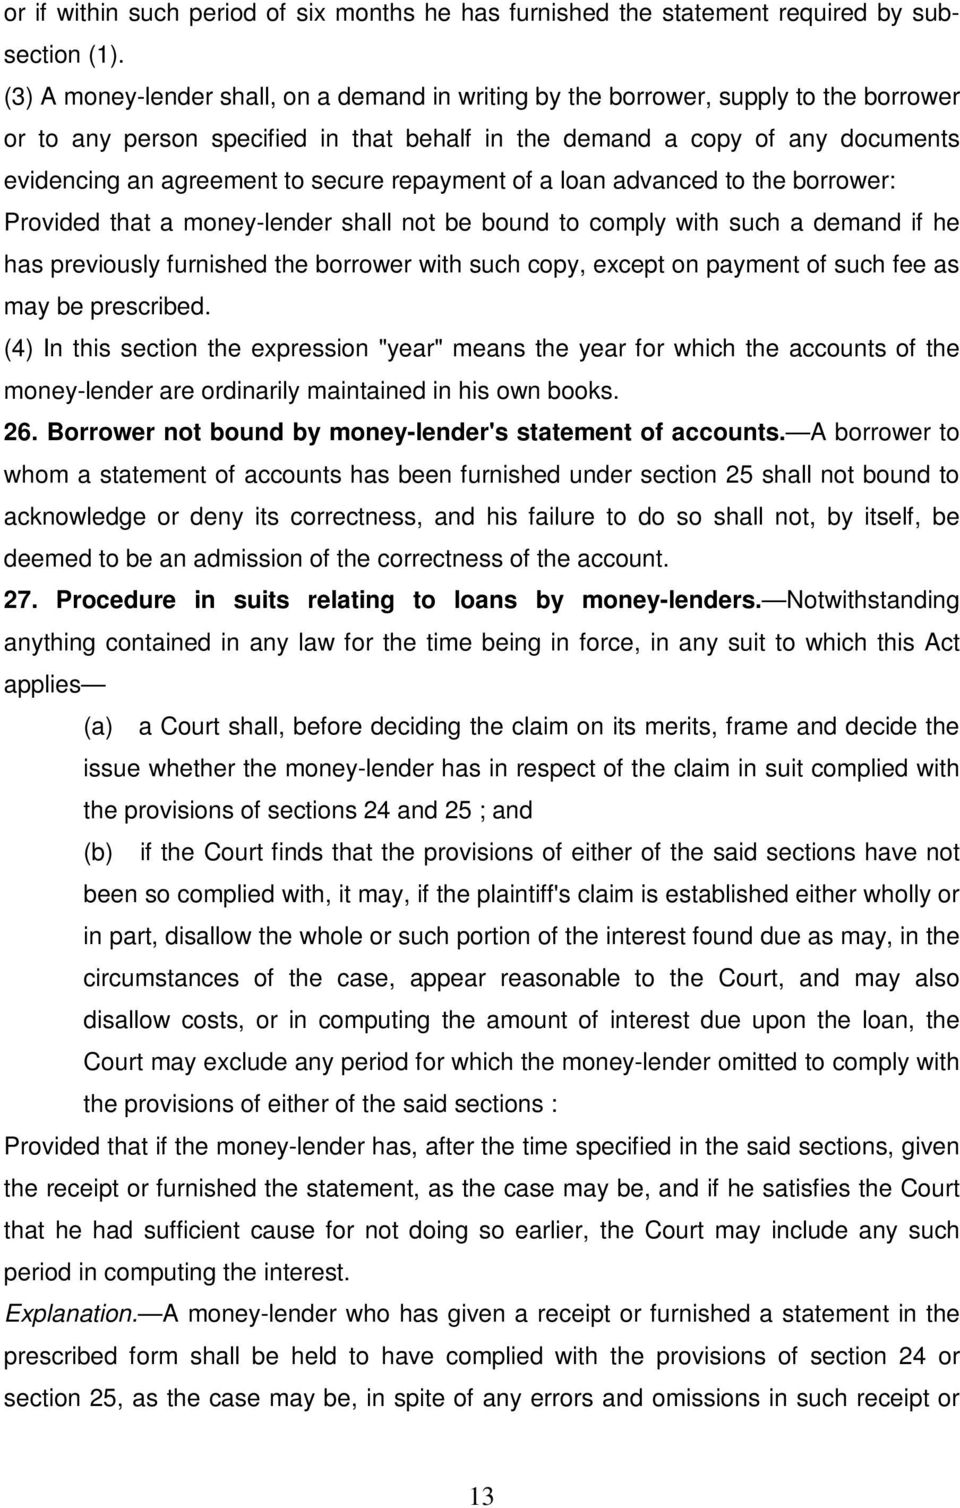 secure repayment of a loan advanced to the borrower: Provided that a money-lender shall not be bound to comply with such a demand if he has previously furnished the borrower with such copy, except on